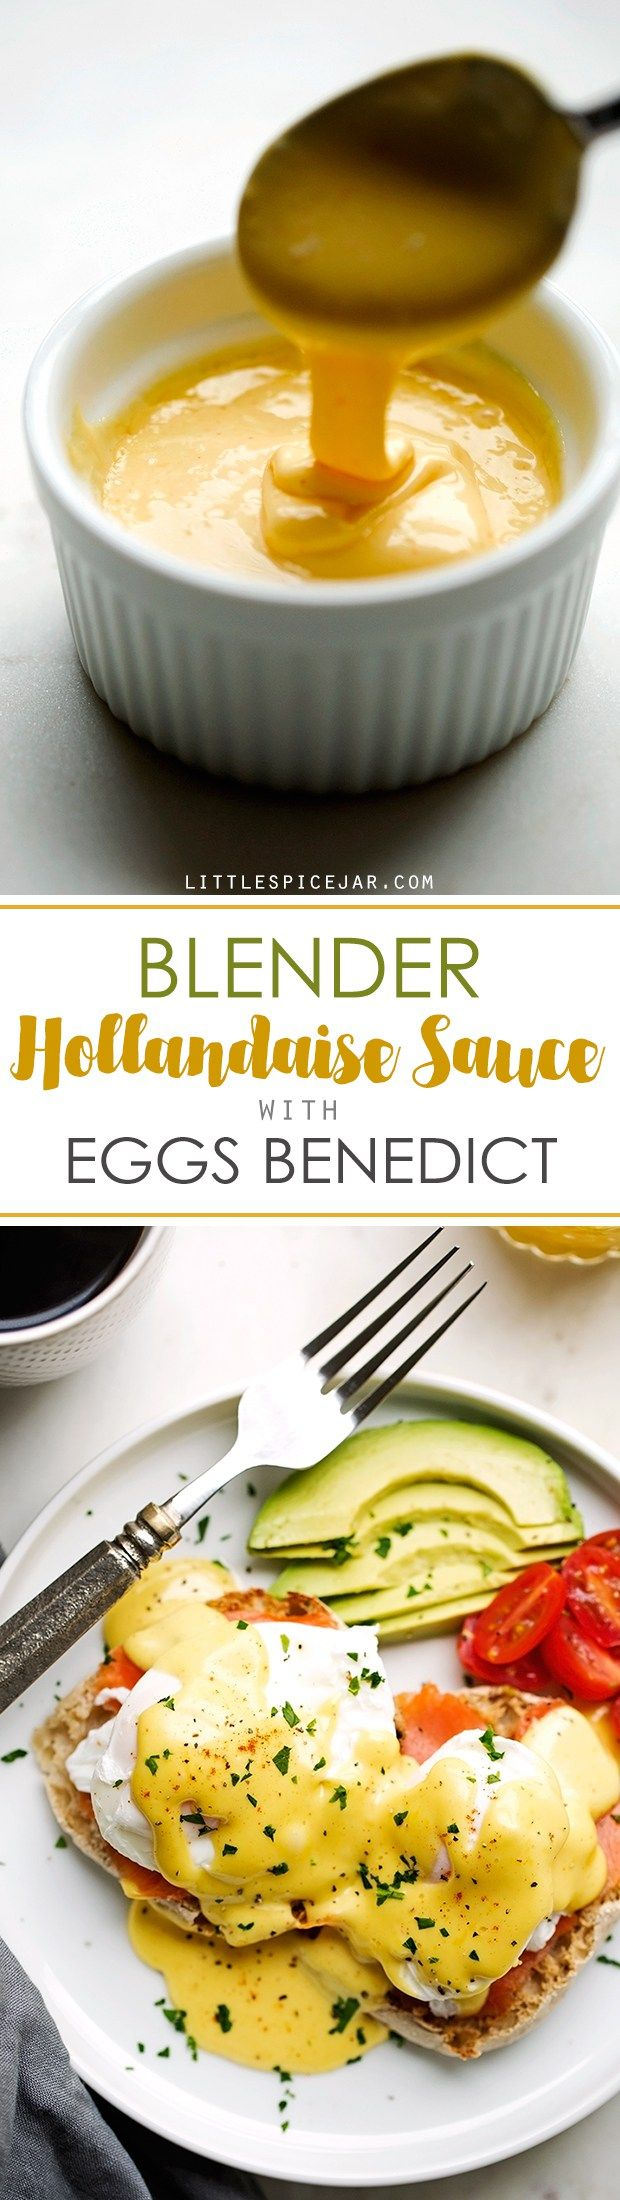 ***Blender Hollandaise Sauce with Eggs Benedict - learn how to make EASY and perfect hollandaise sauce every single time!